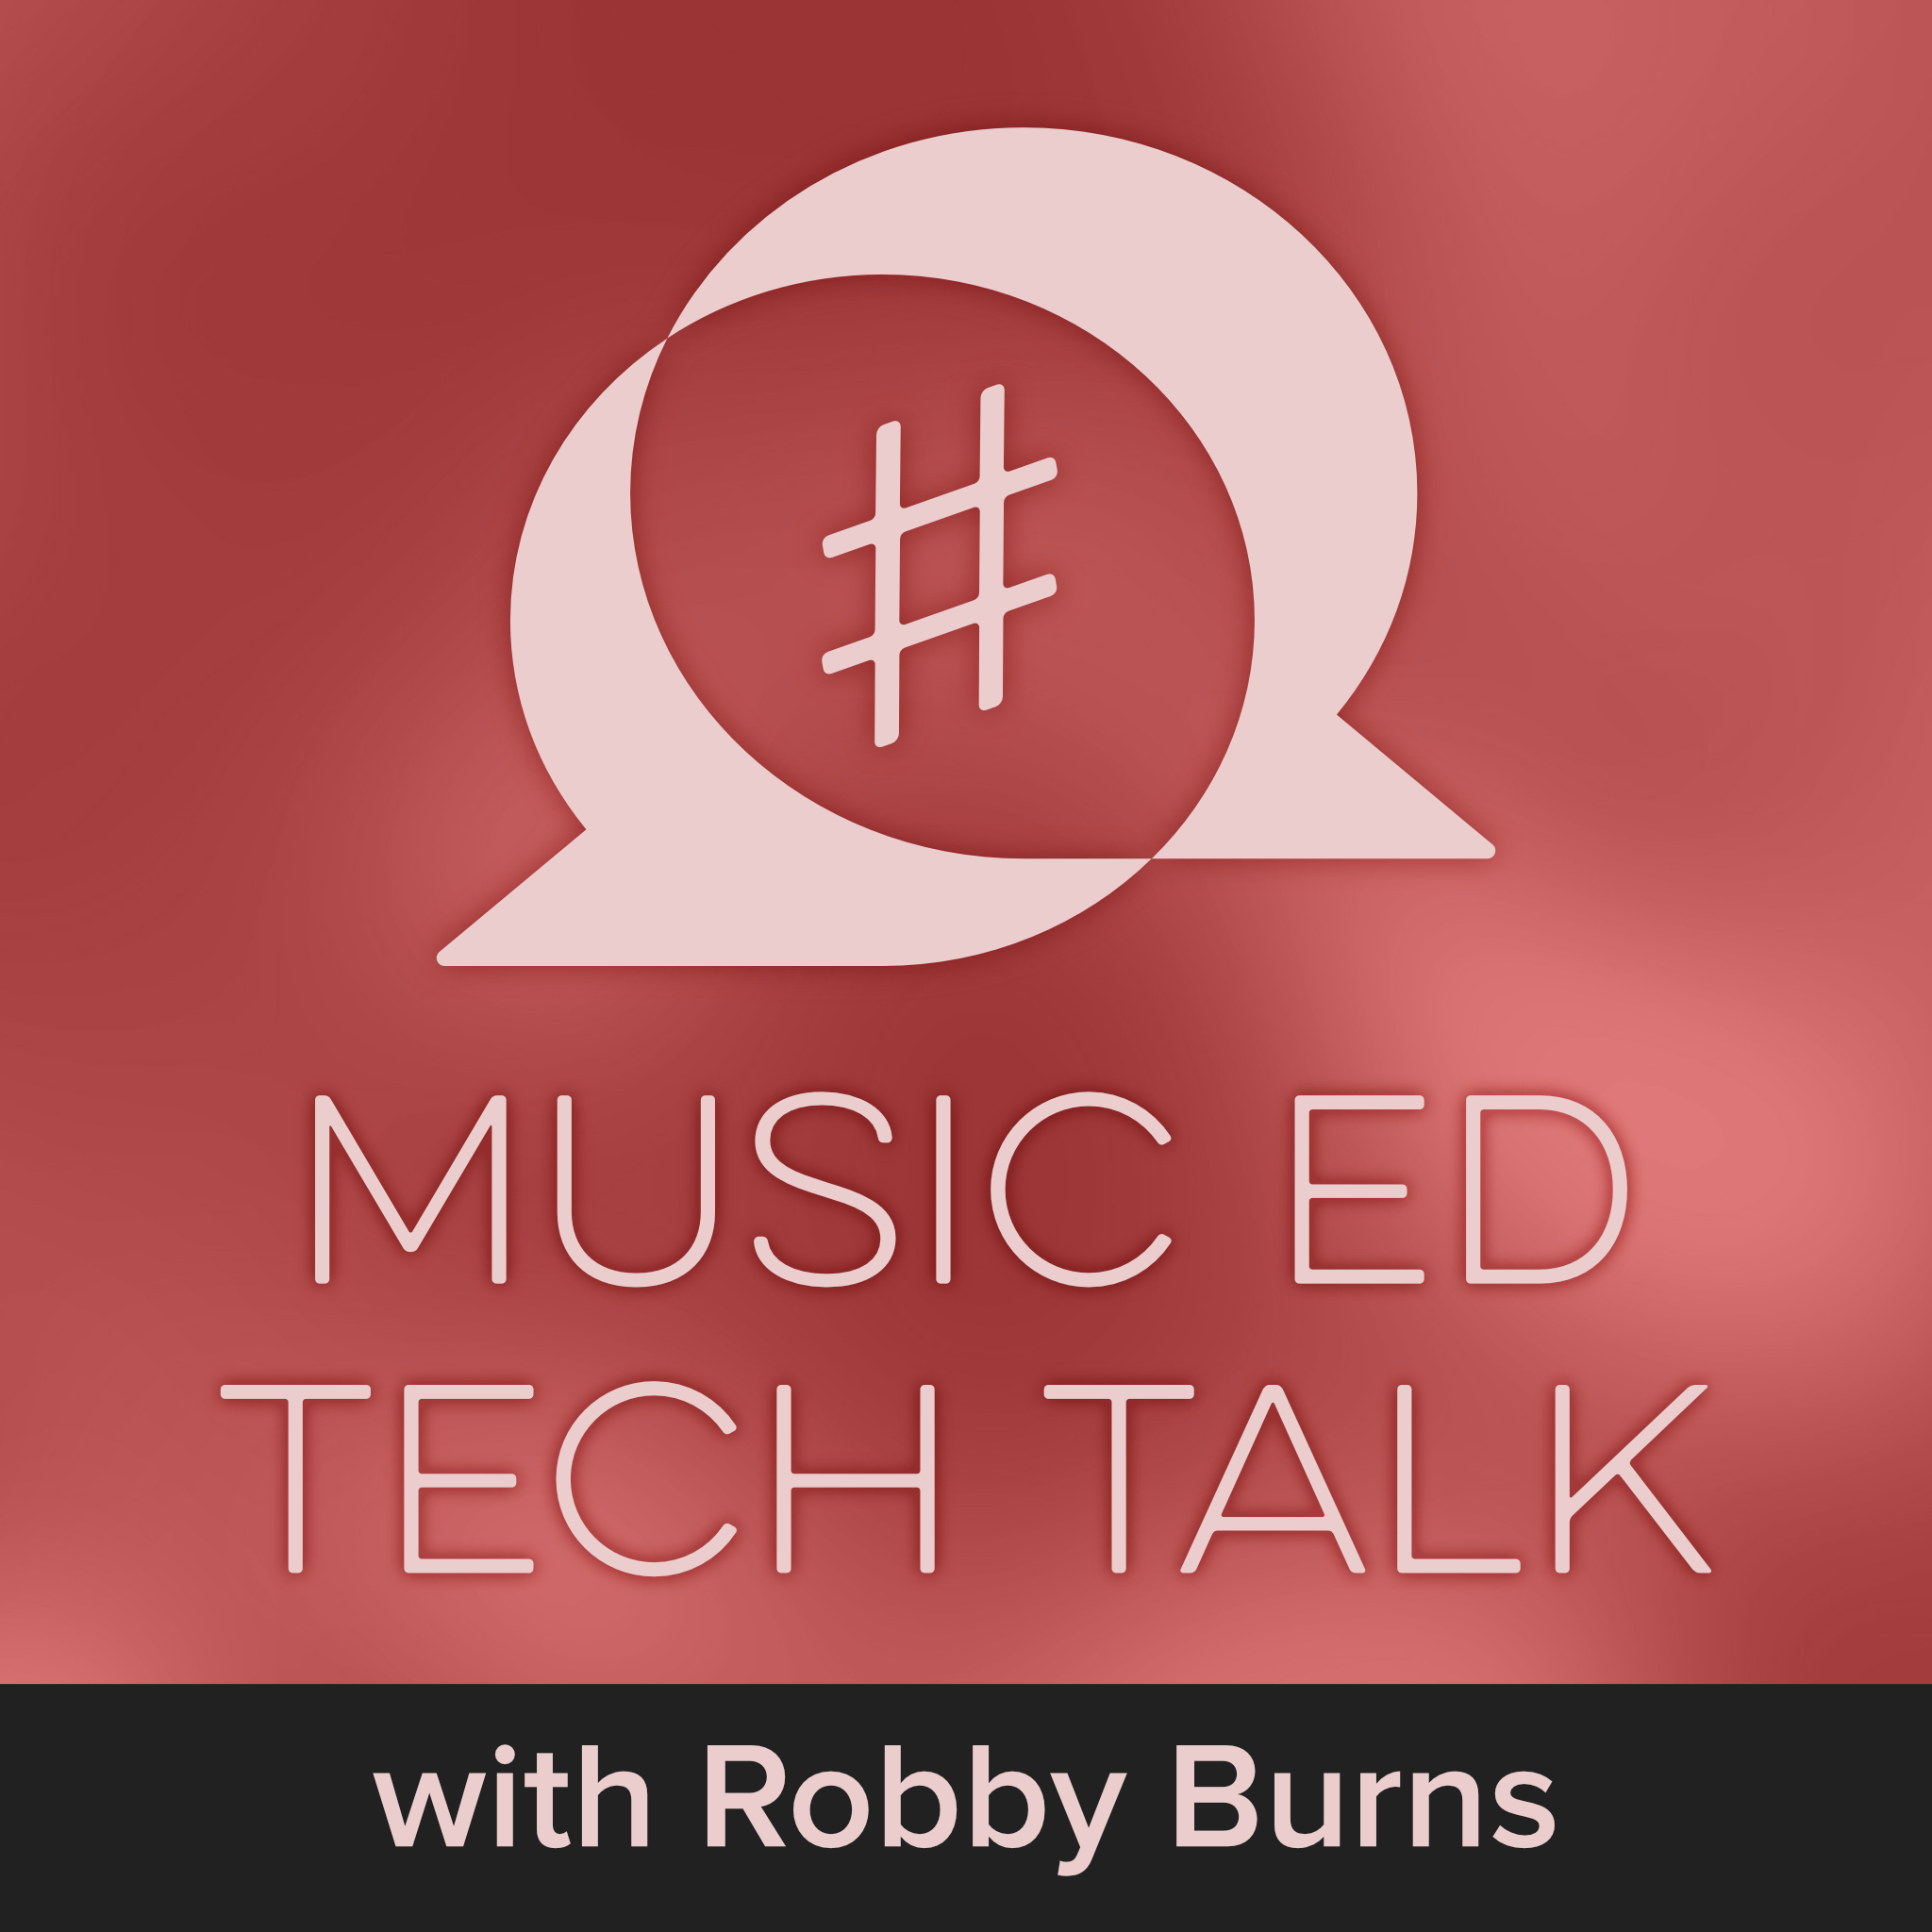 Music Ed Tech Talk show art